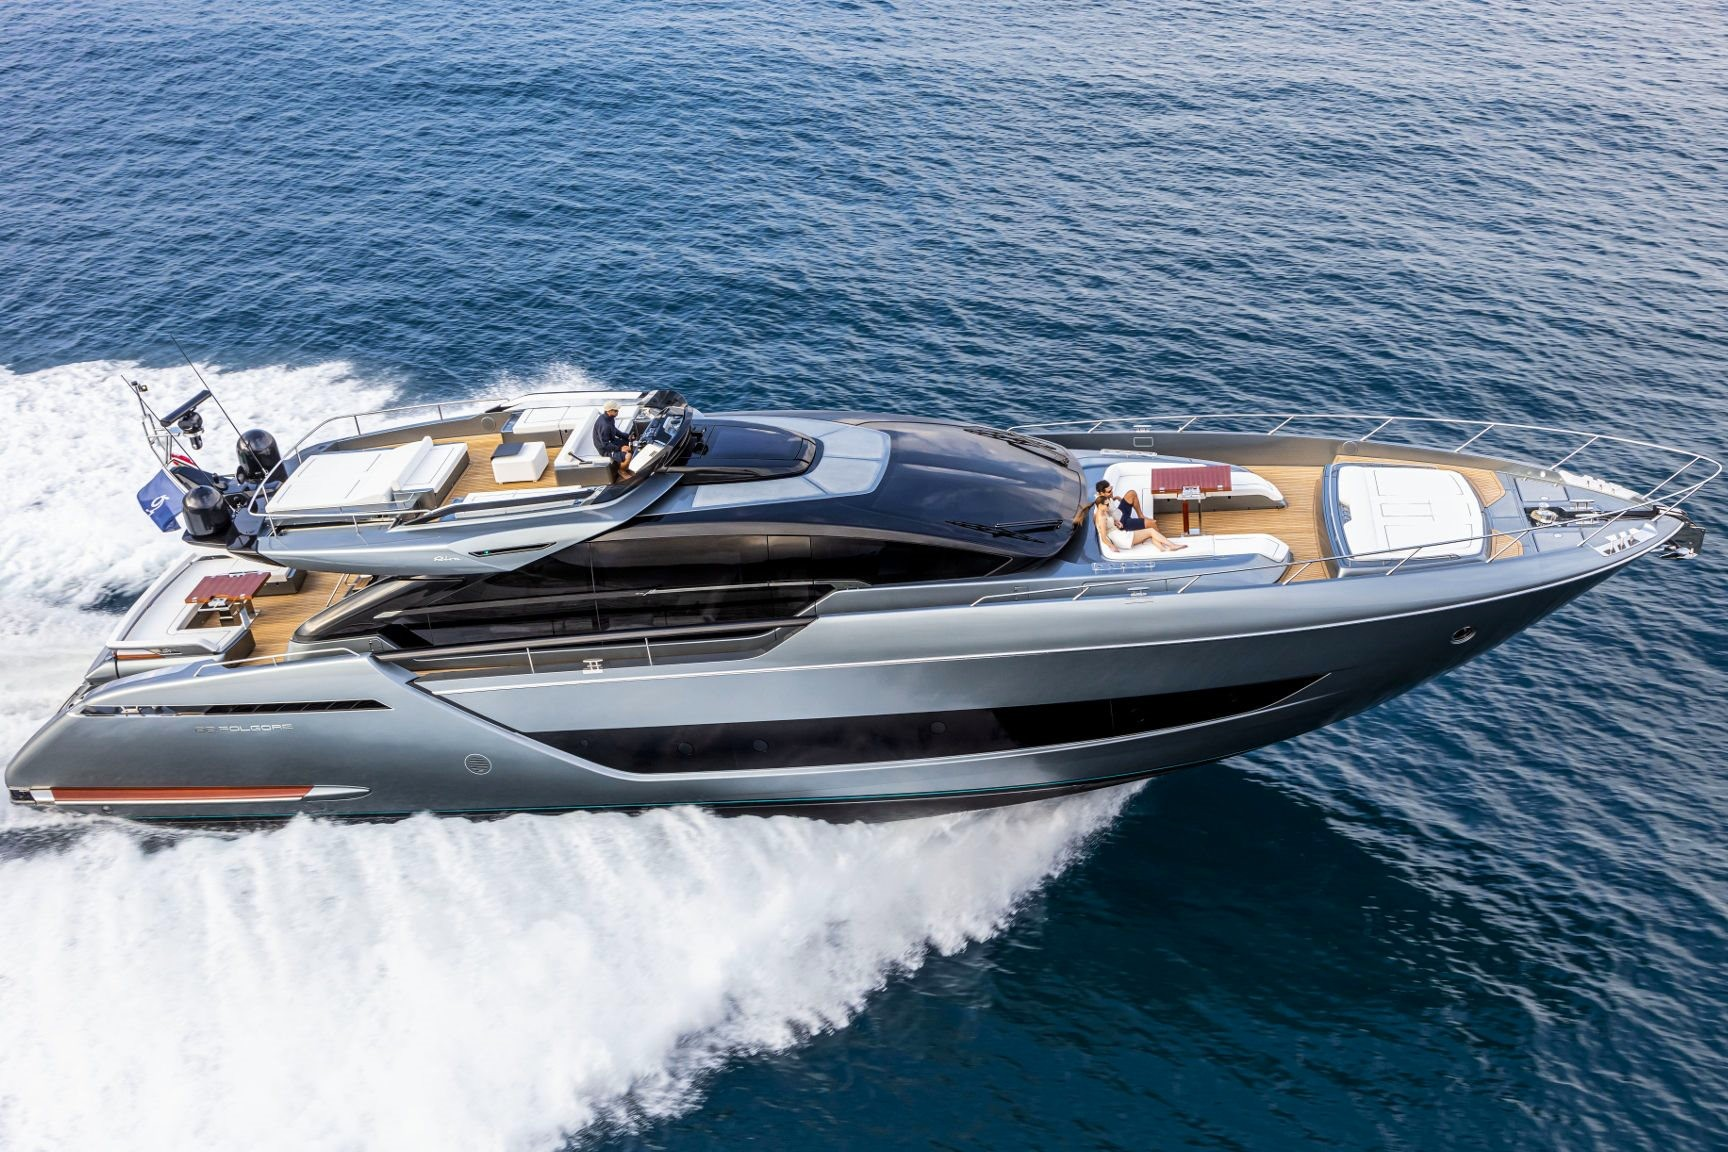 Best yacht and superyacht brands, top personal yachts.